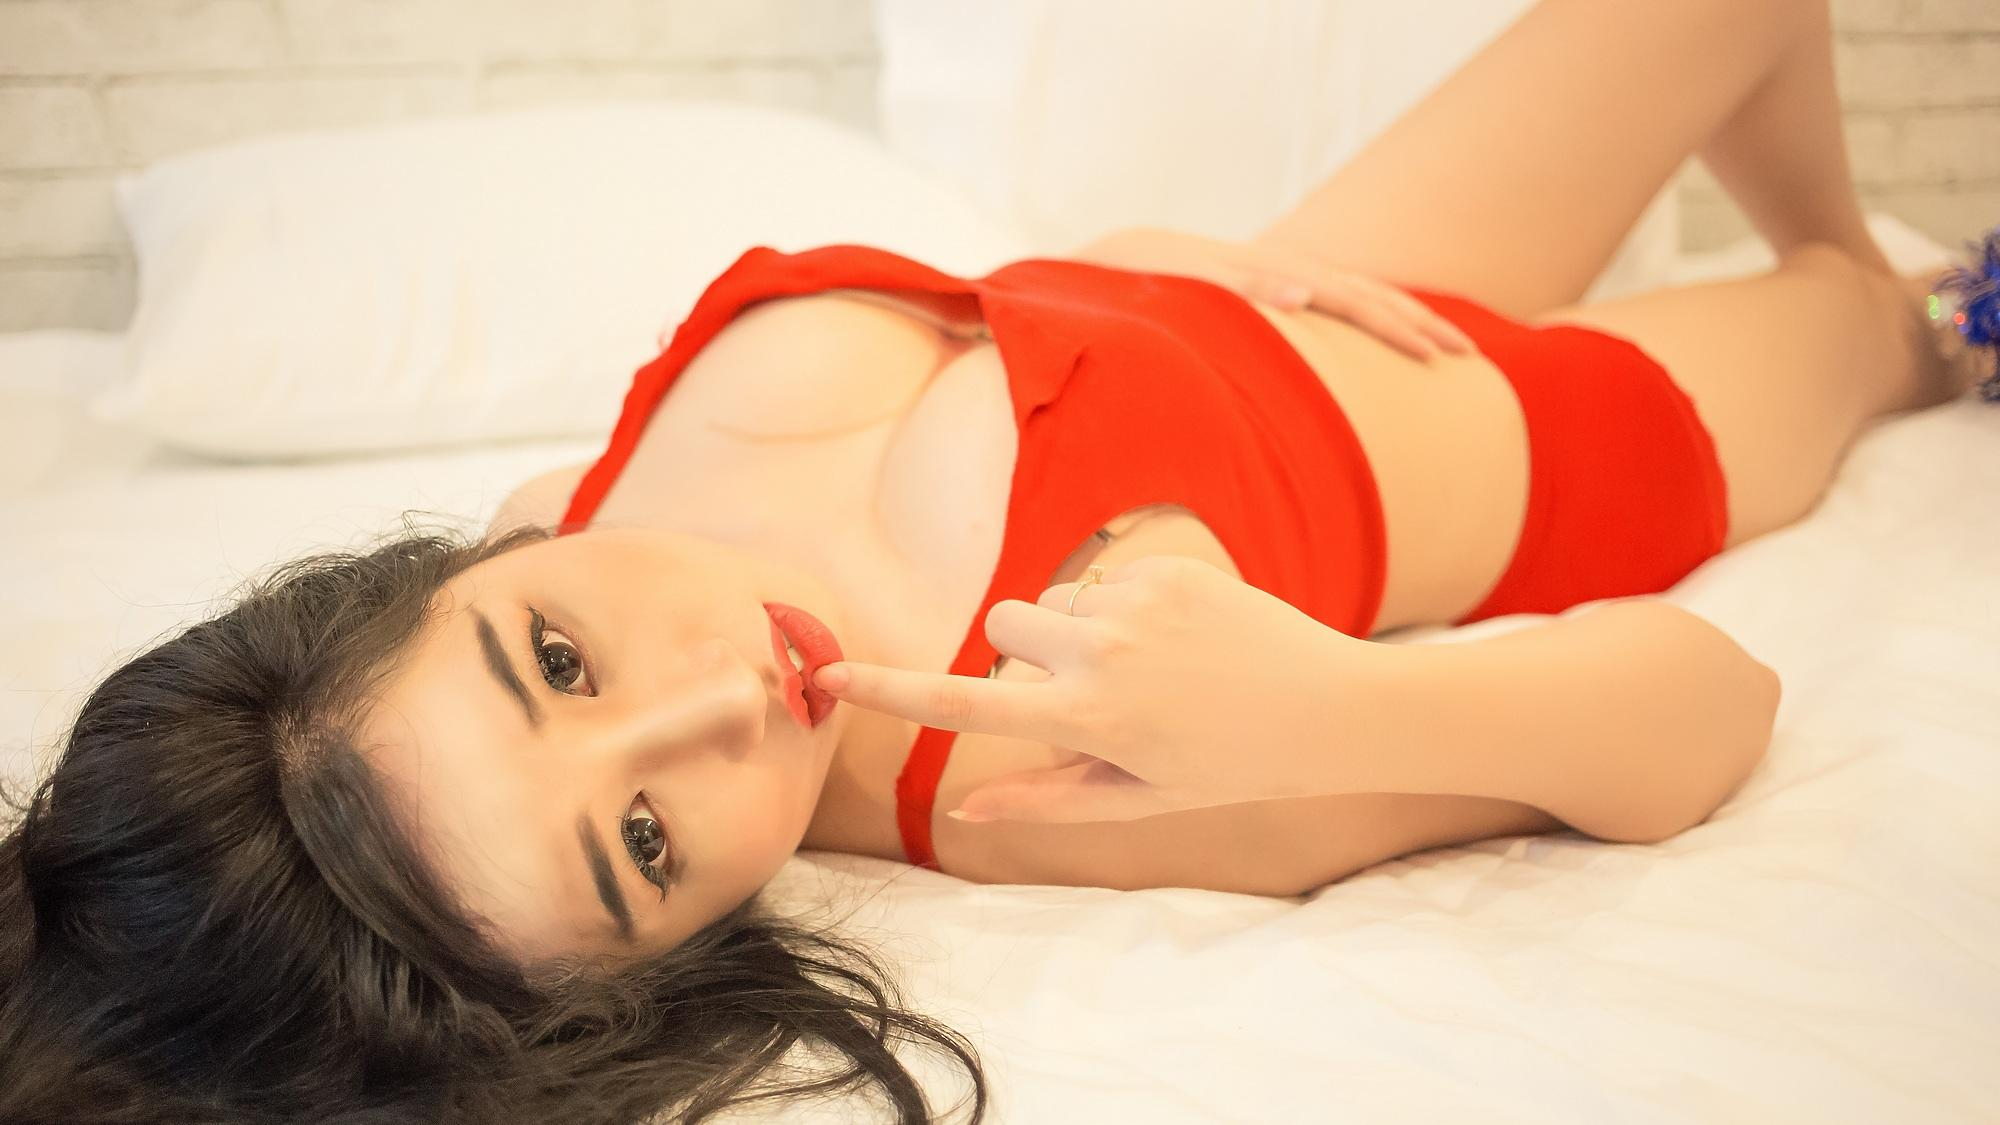 pinalove dating free 1 - Free Sites That Are Actually Free